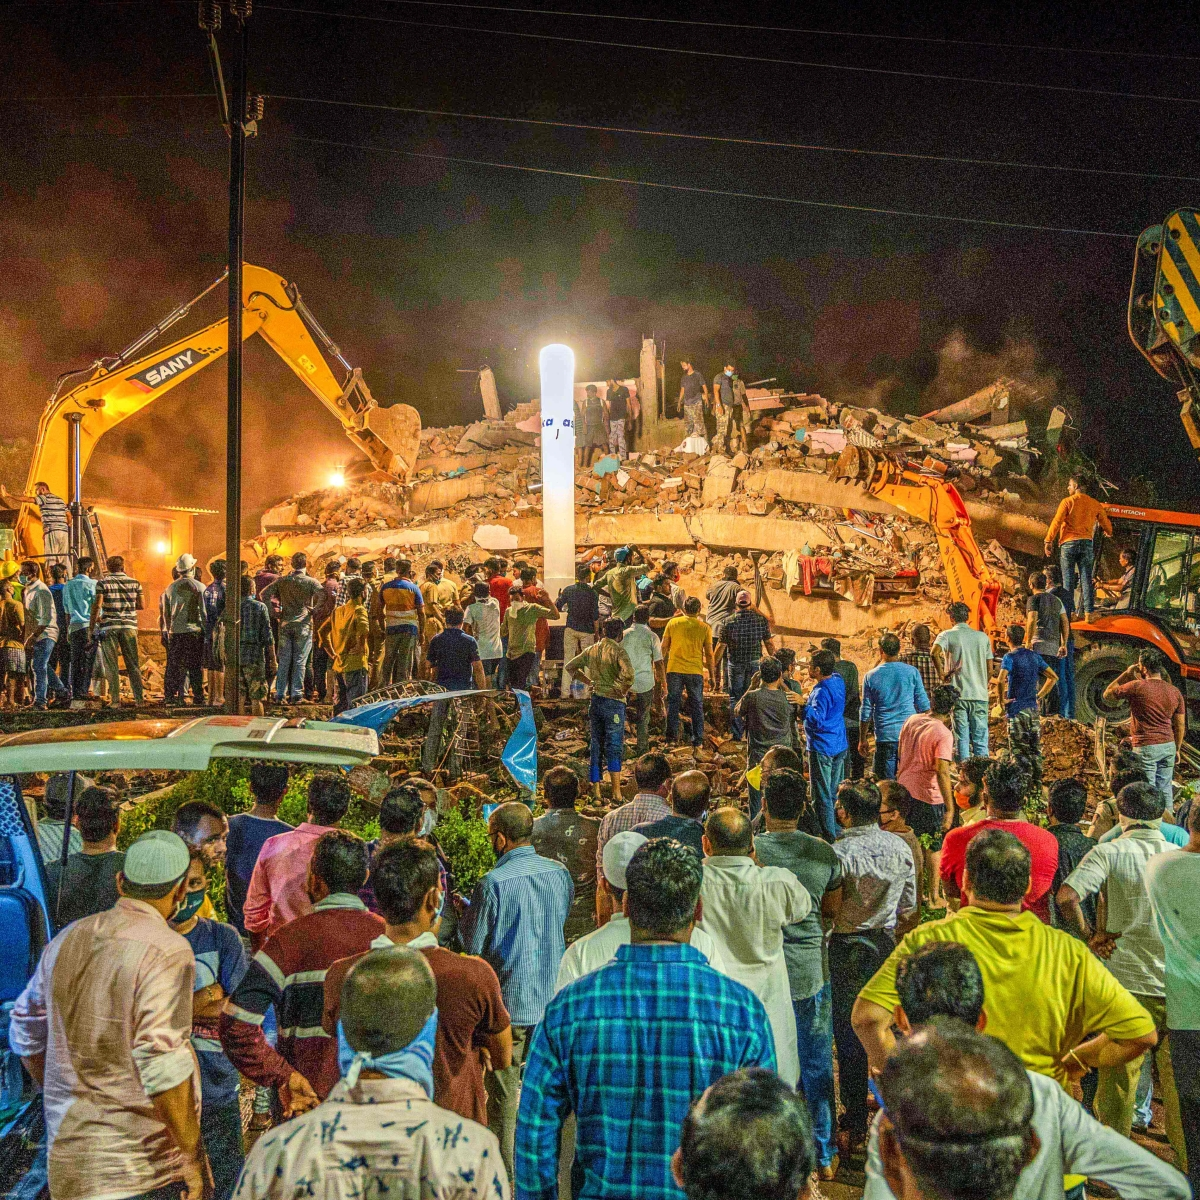 Raigad: 17 rescued, 1 dead as 5-storey building collapses in Mahad